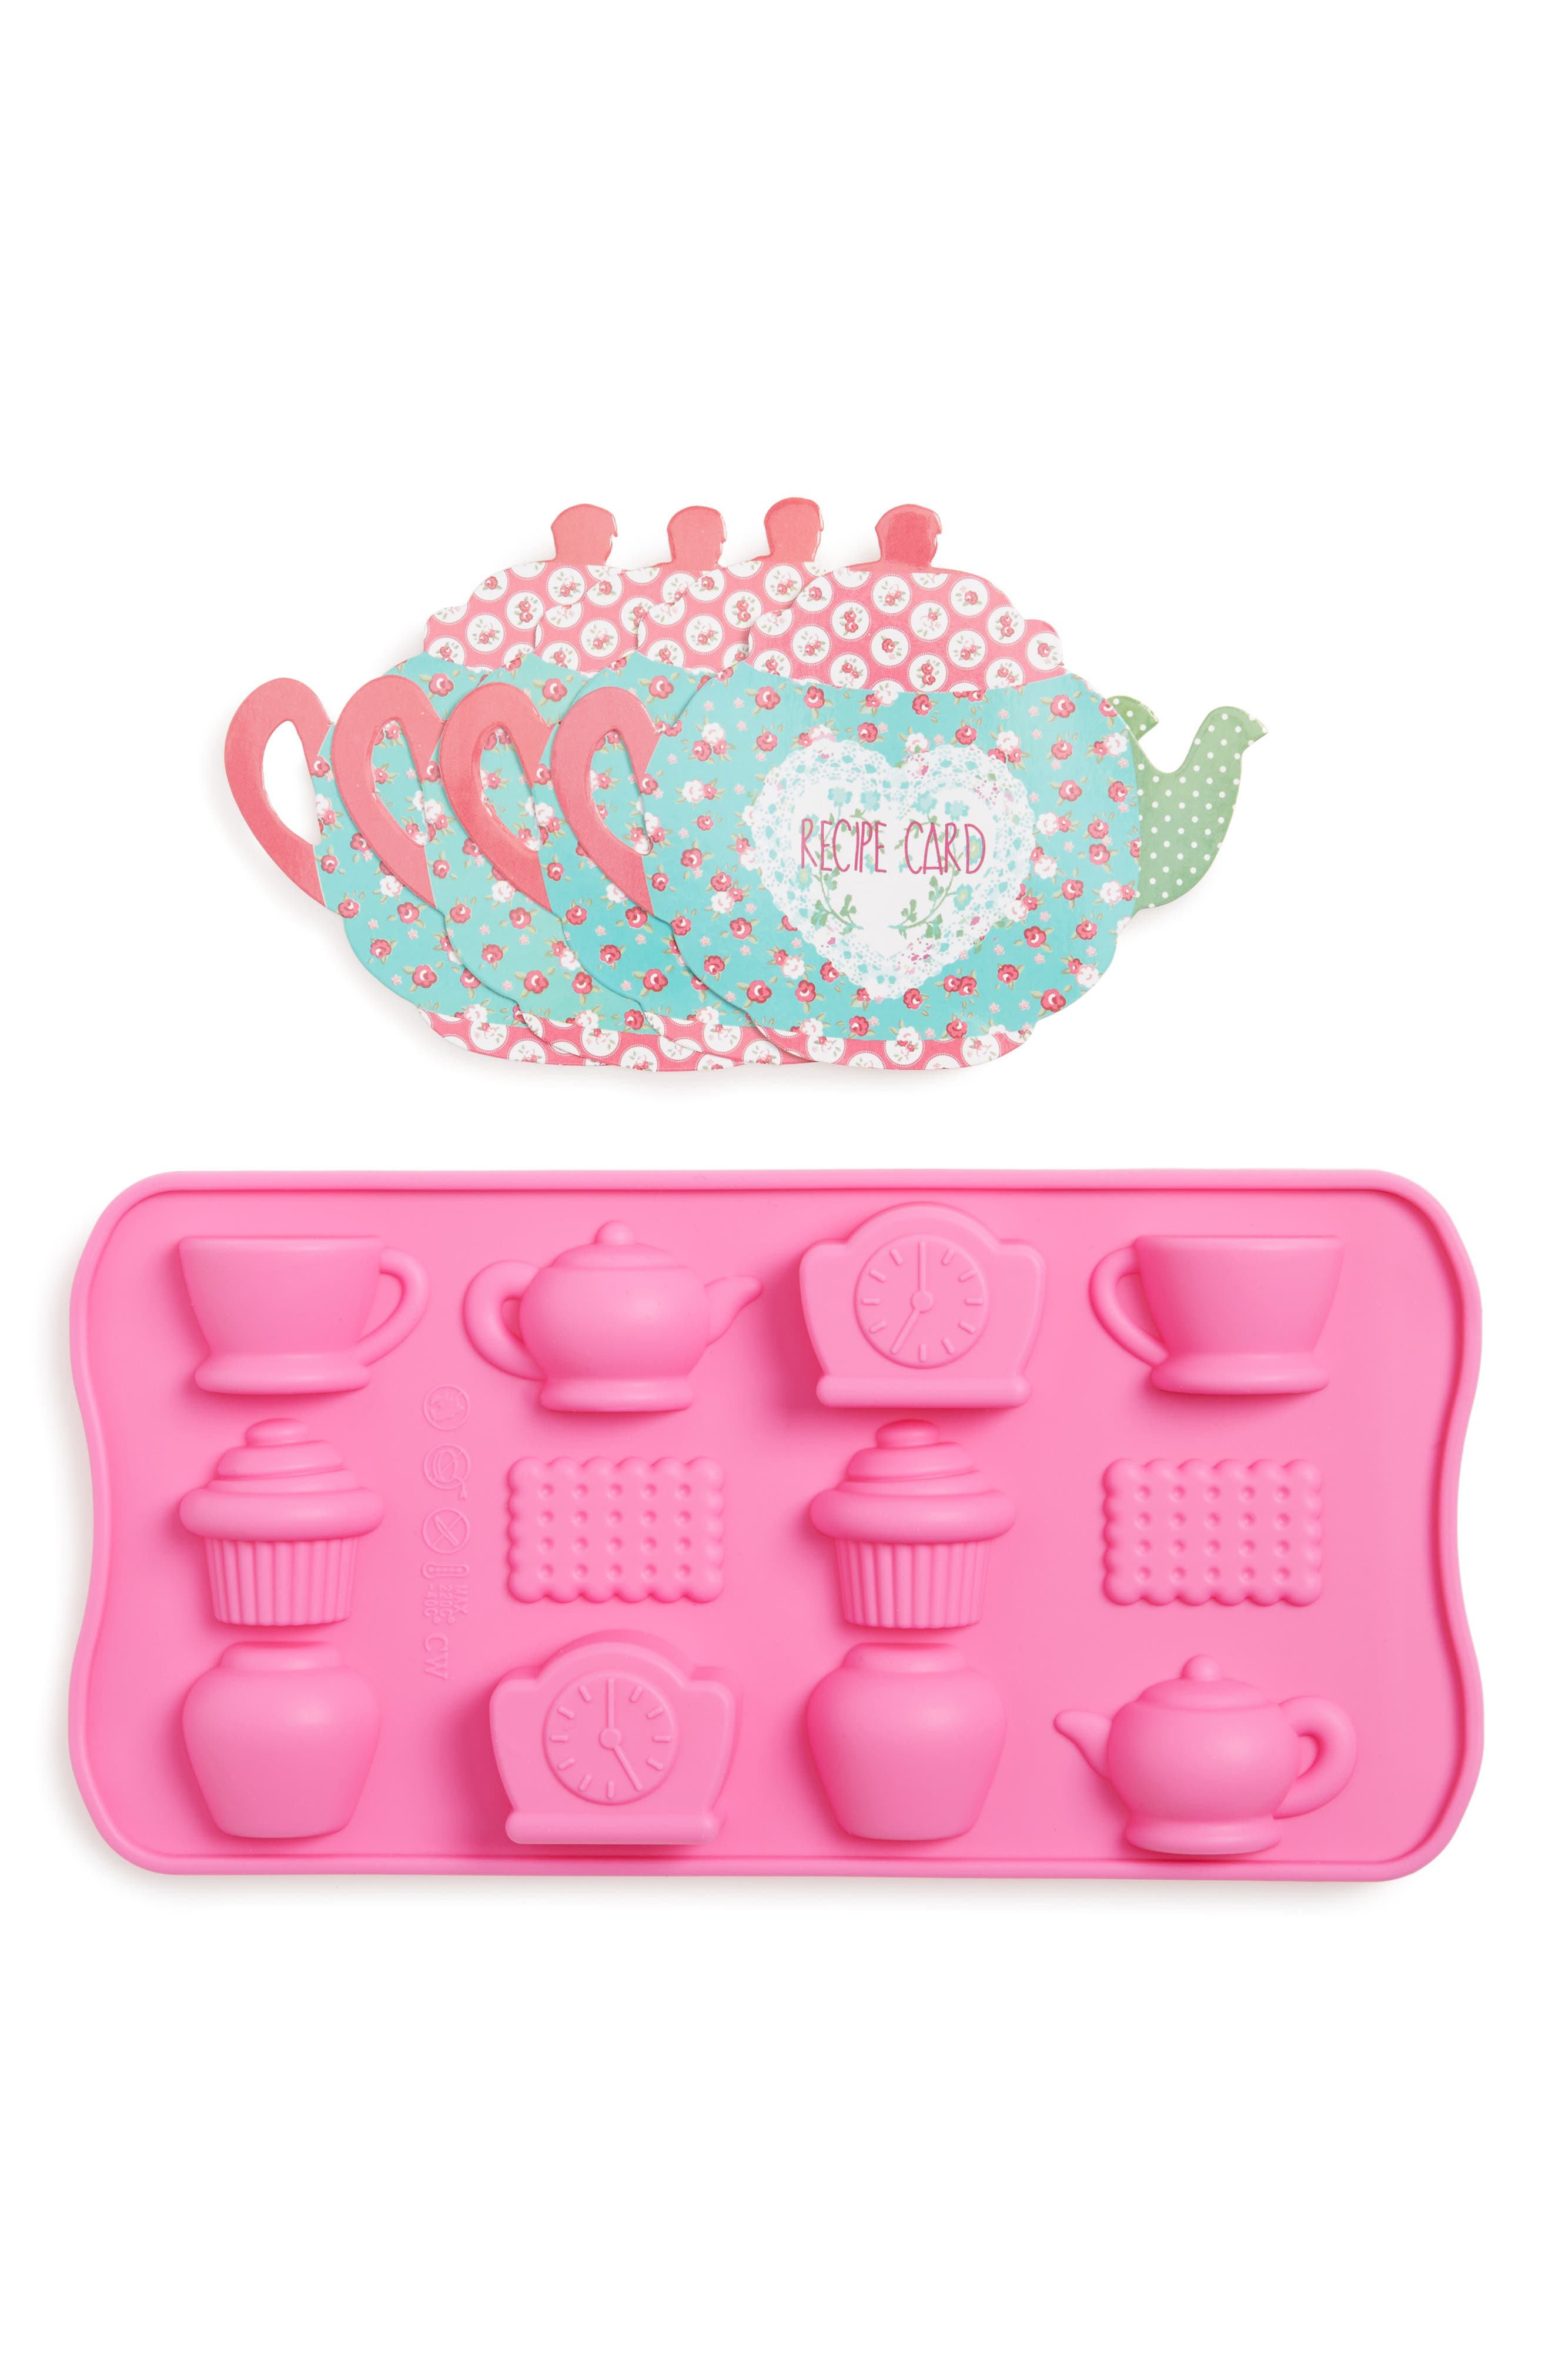 Handstand Kids Tea Party Chocolate Making Set